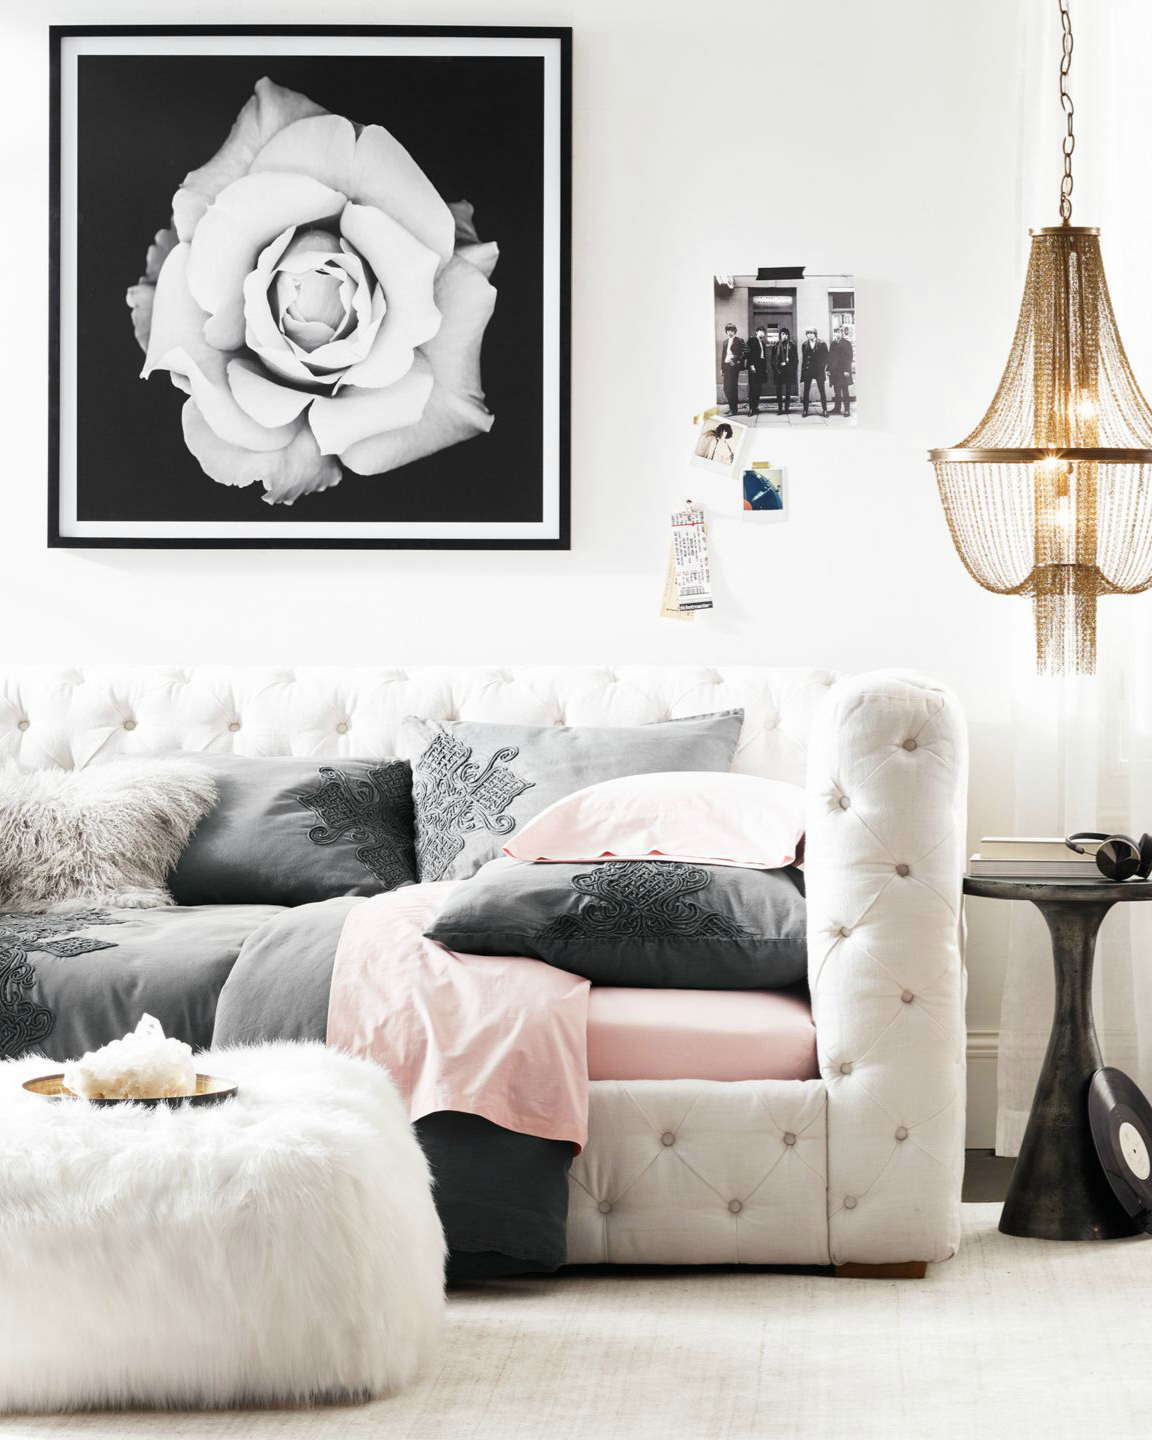 Elegant Tufted Daybed. Edgy Accents. Glam Style Girl